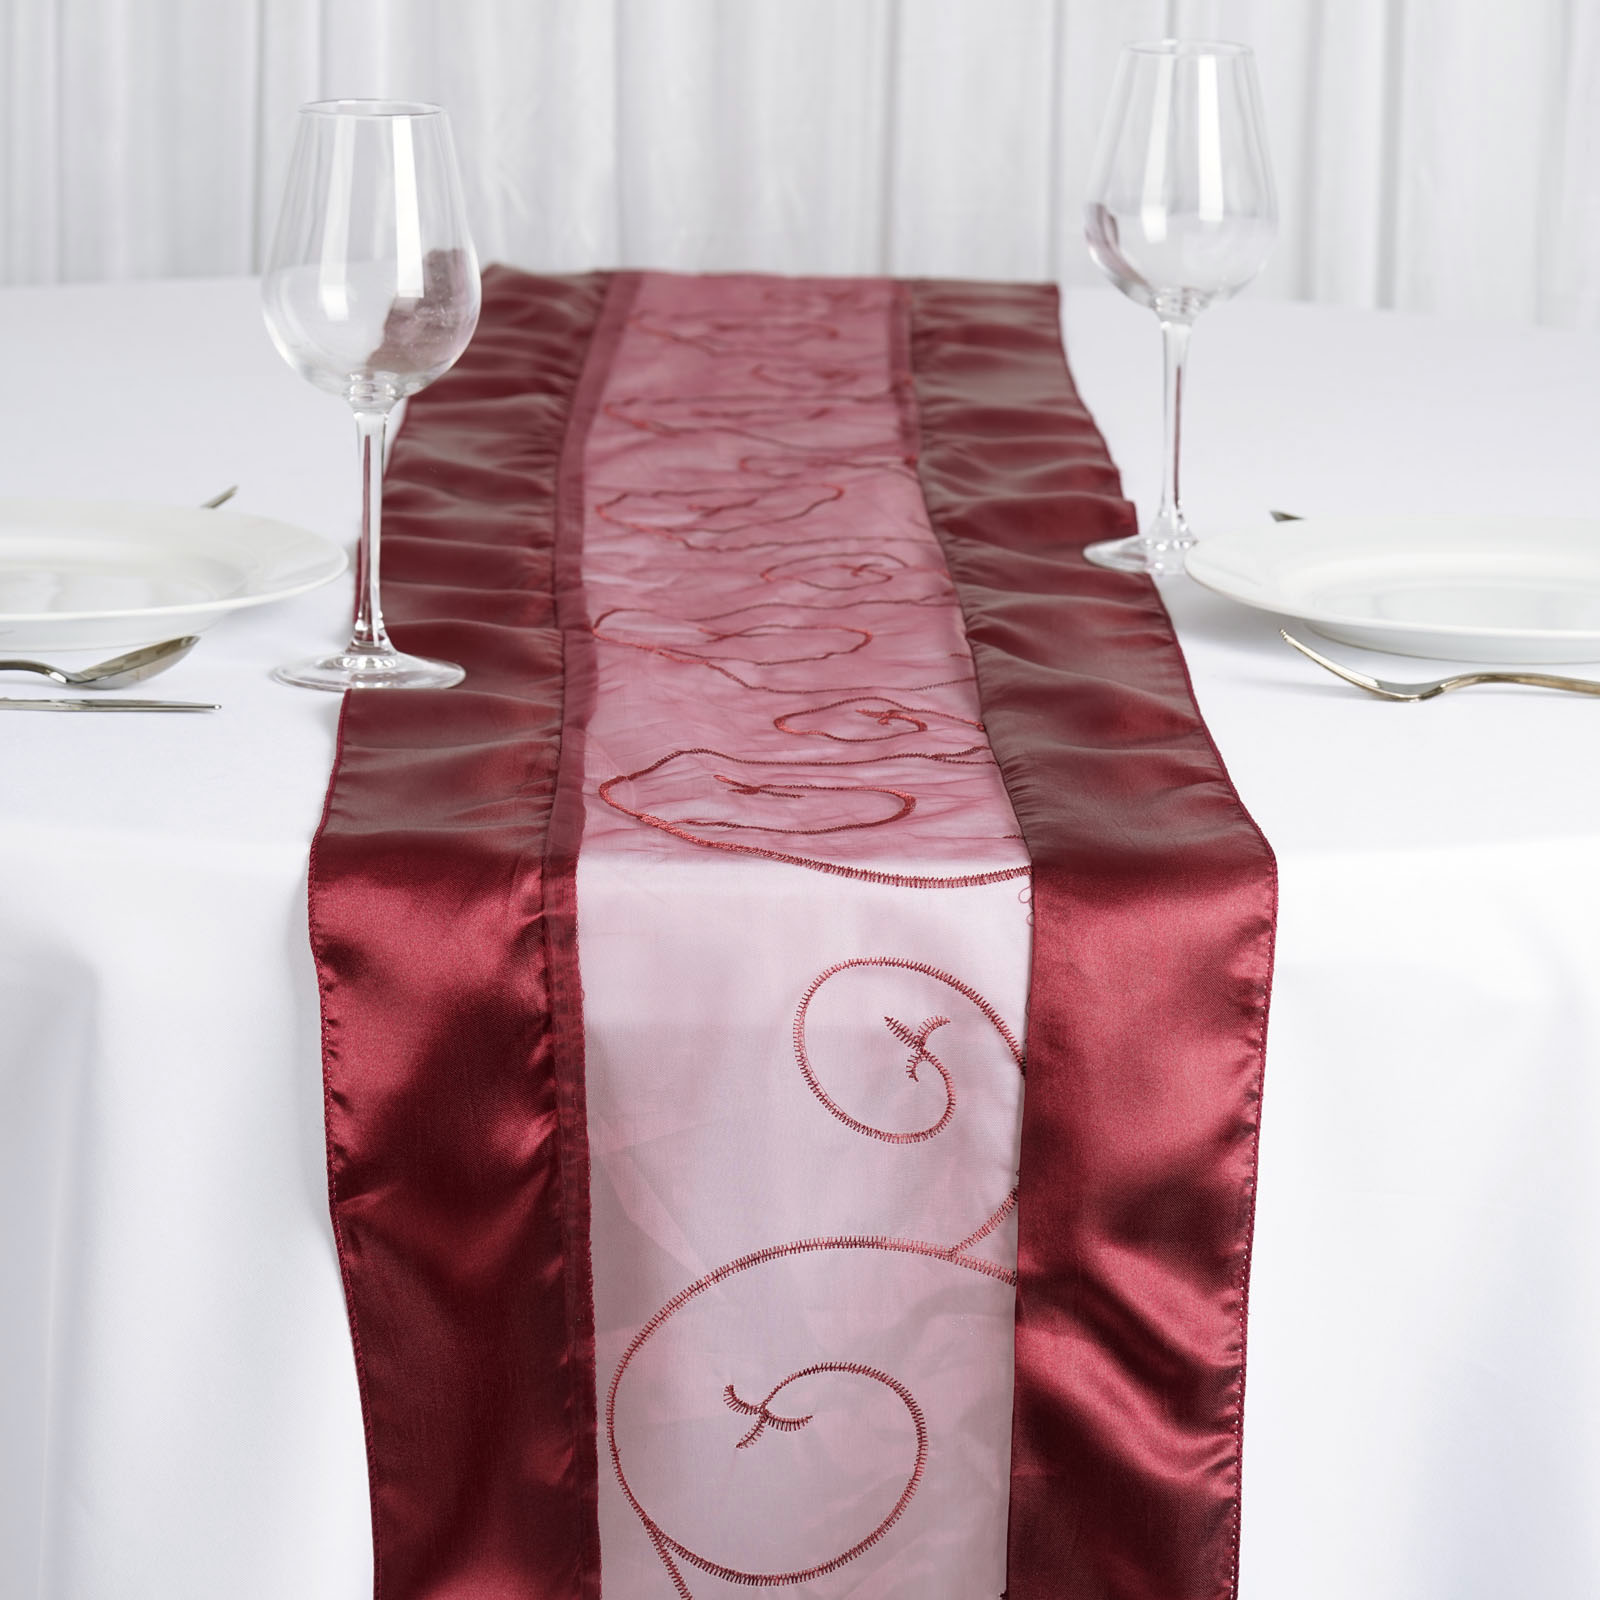 Details About Burgundy EMBROIDERED TABLE RUNNER Fancy Wedding Party  Catering Linens SALE